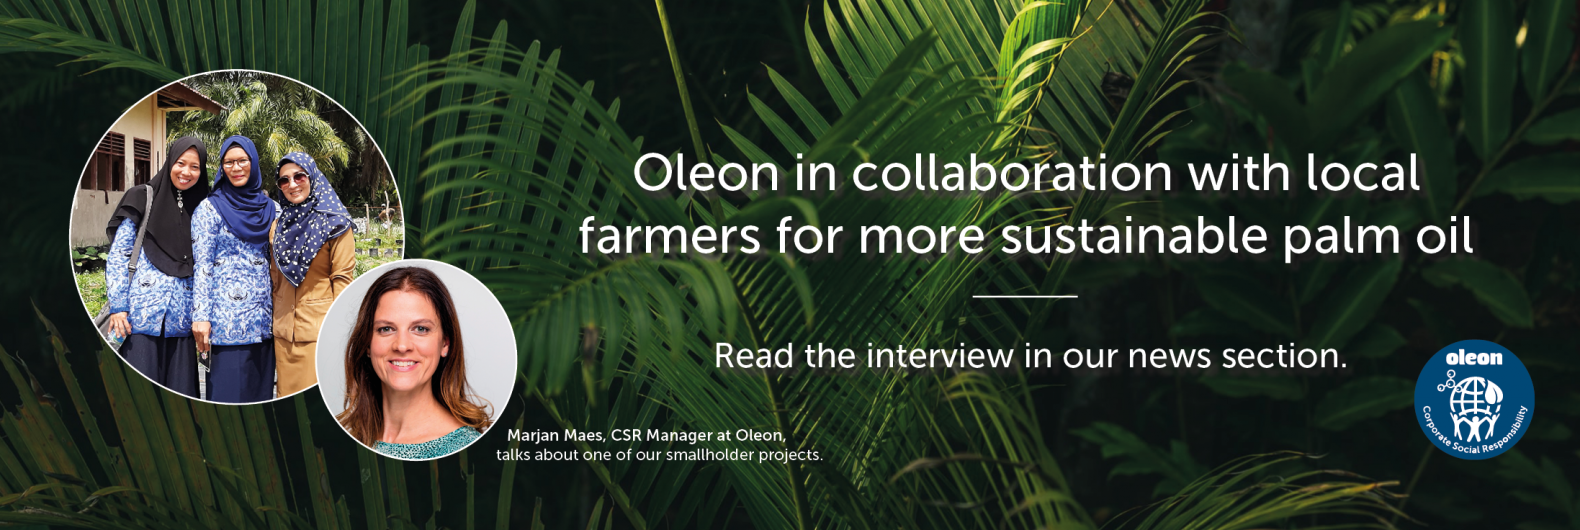 Interview Smallholder Projects Sustainable Palm Oil